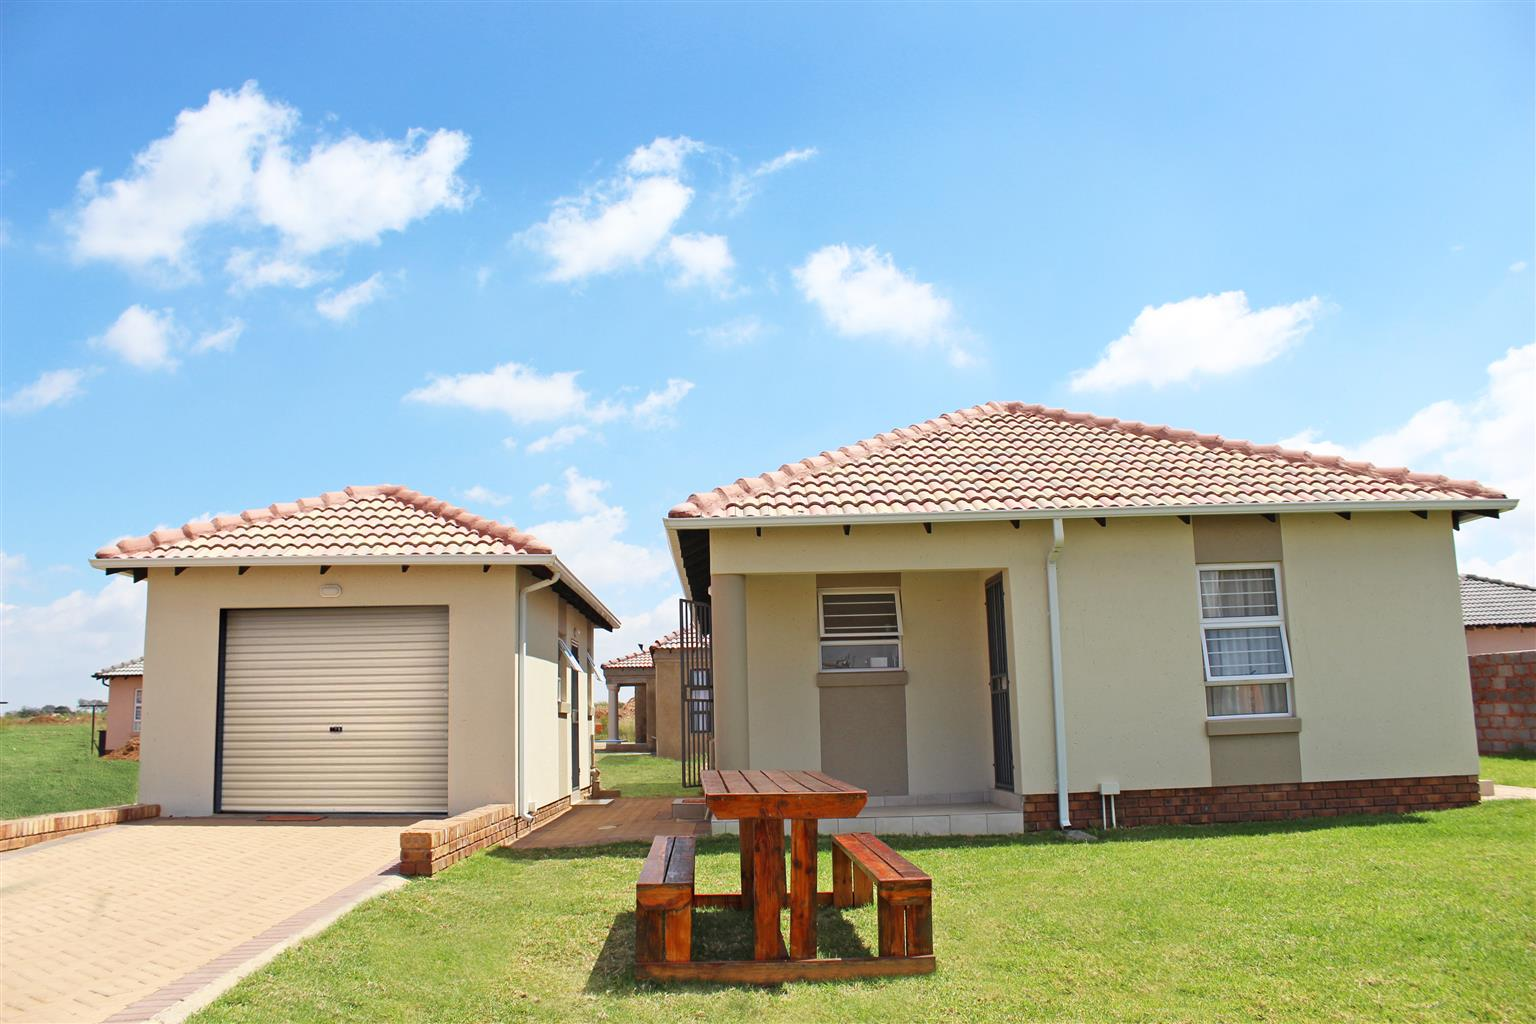 Cozy 2 bedroom house in Pretoria West for only R5500